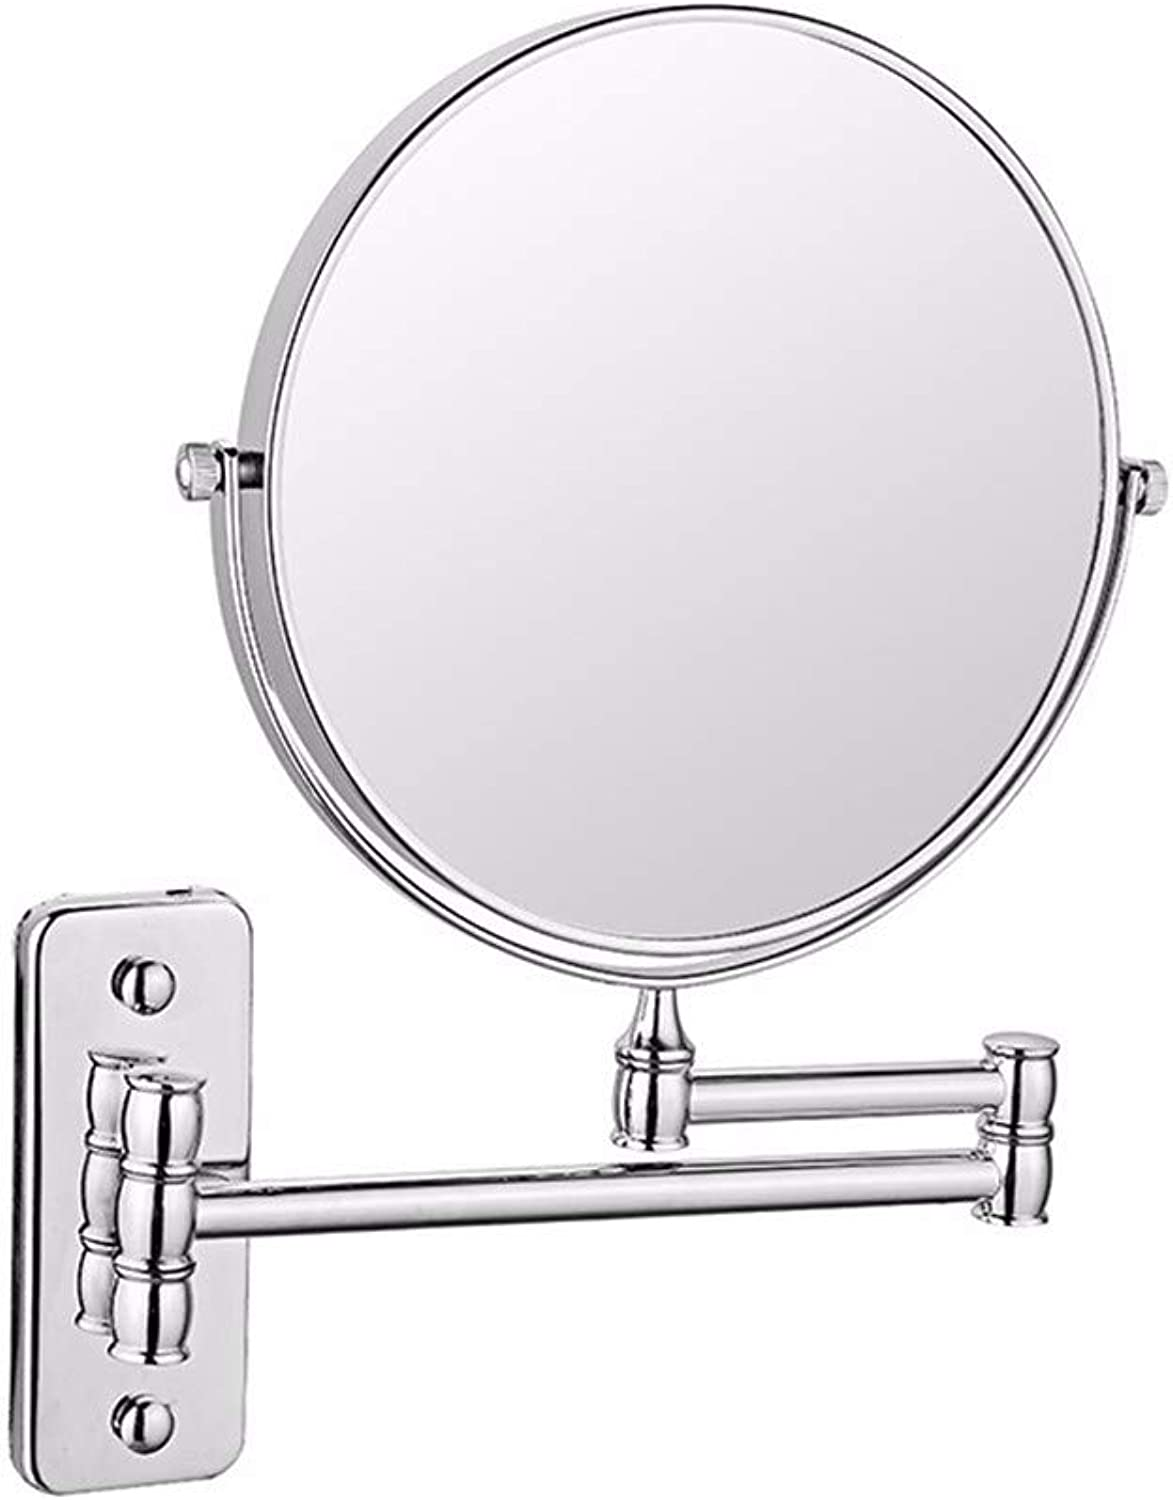 Wall Mounted Mirror 3X Magnification Bathroom Shaving Mirror Double-Sided Round Magnifying Vanity Swivel Mirror 360° redatable and Extendable Arm,6inch,A